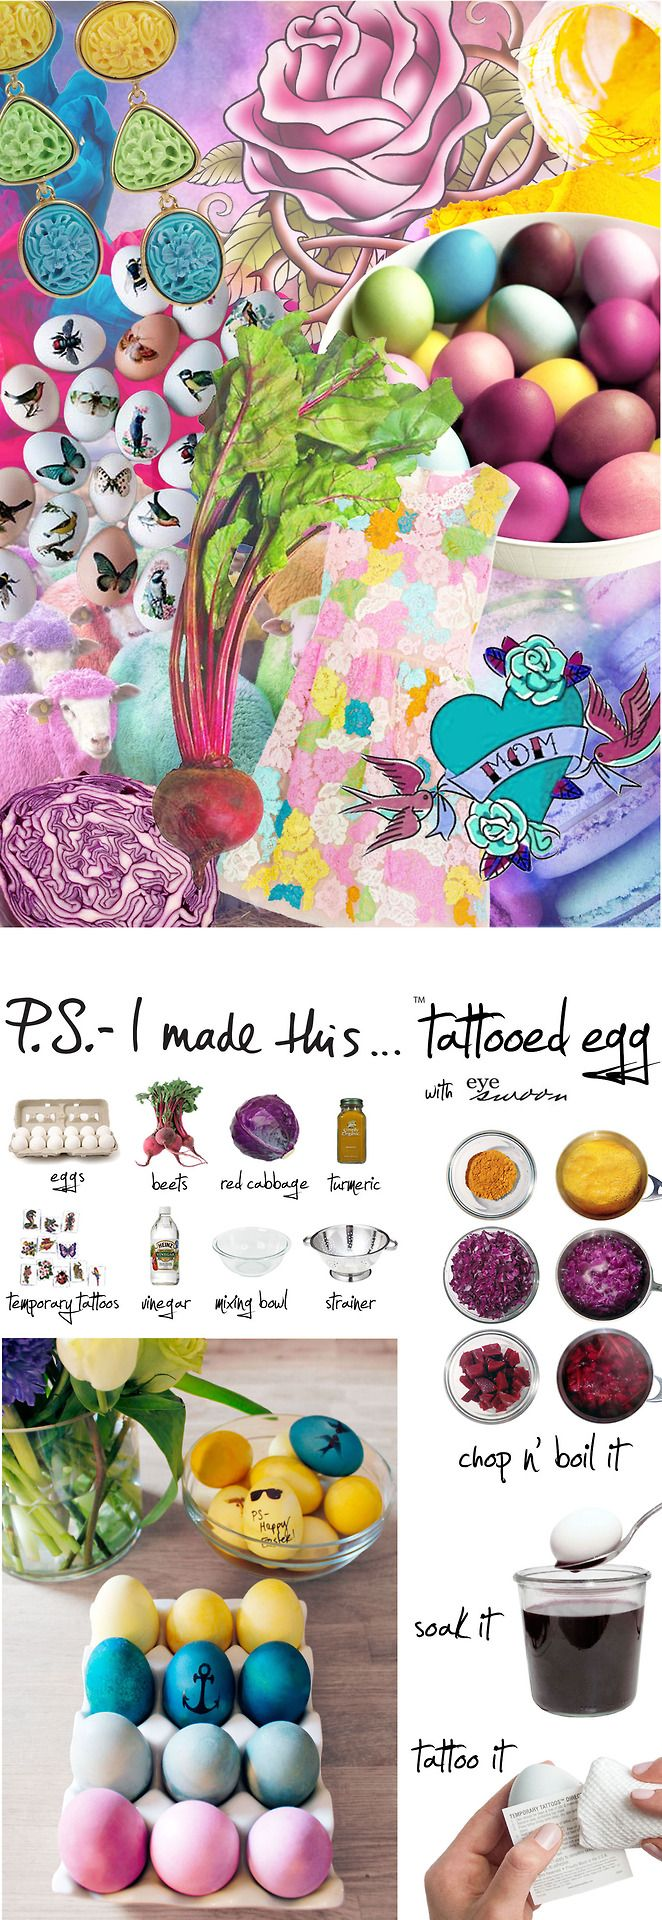 best easter party ideas images on pinterest easter party